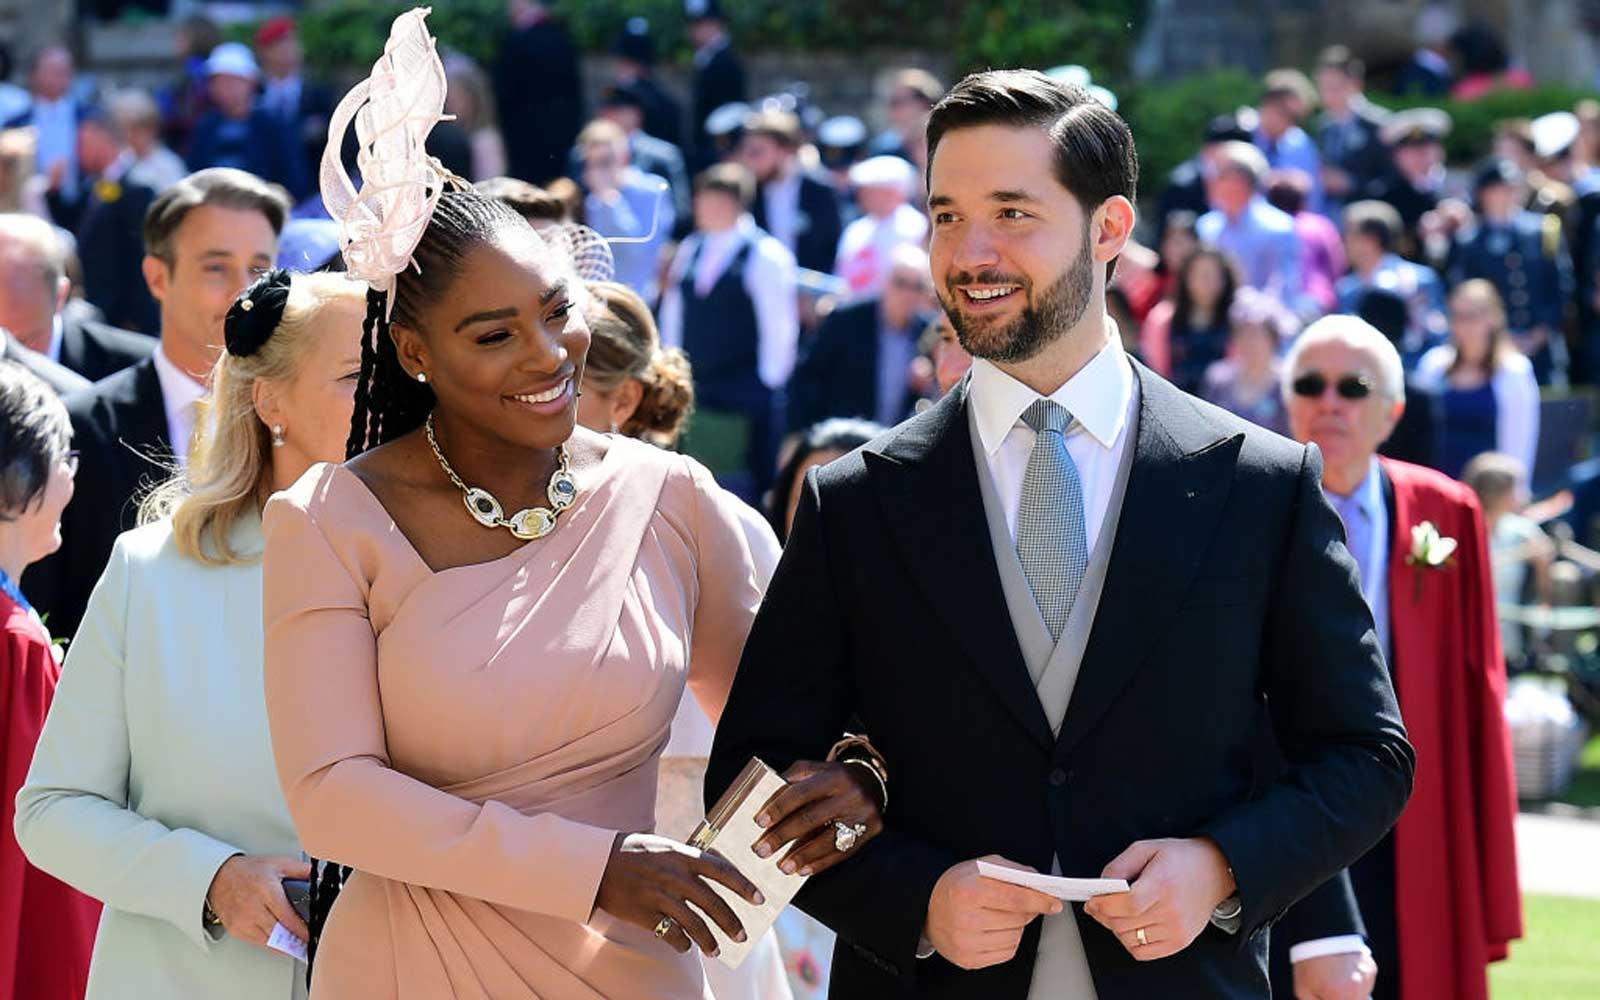 Serena Williams Wanted Italian Food for Dinner, So Her Husband Flew Her to Venice